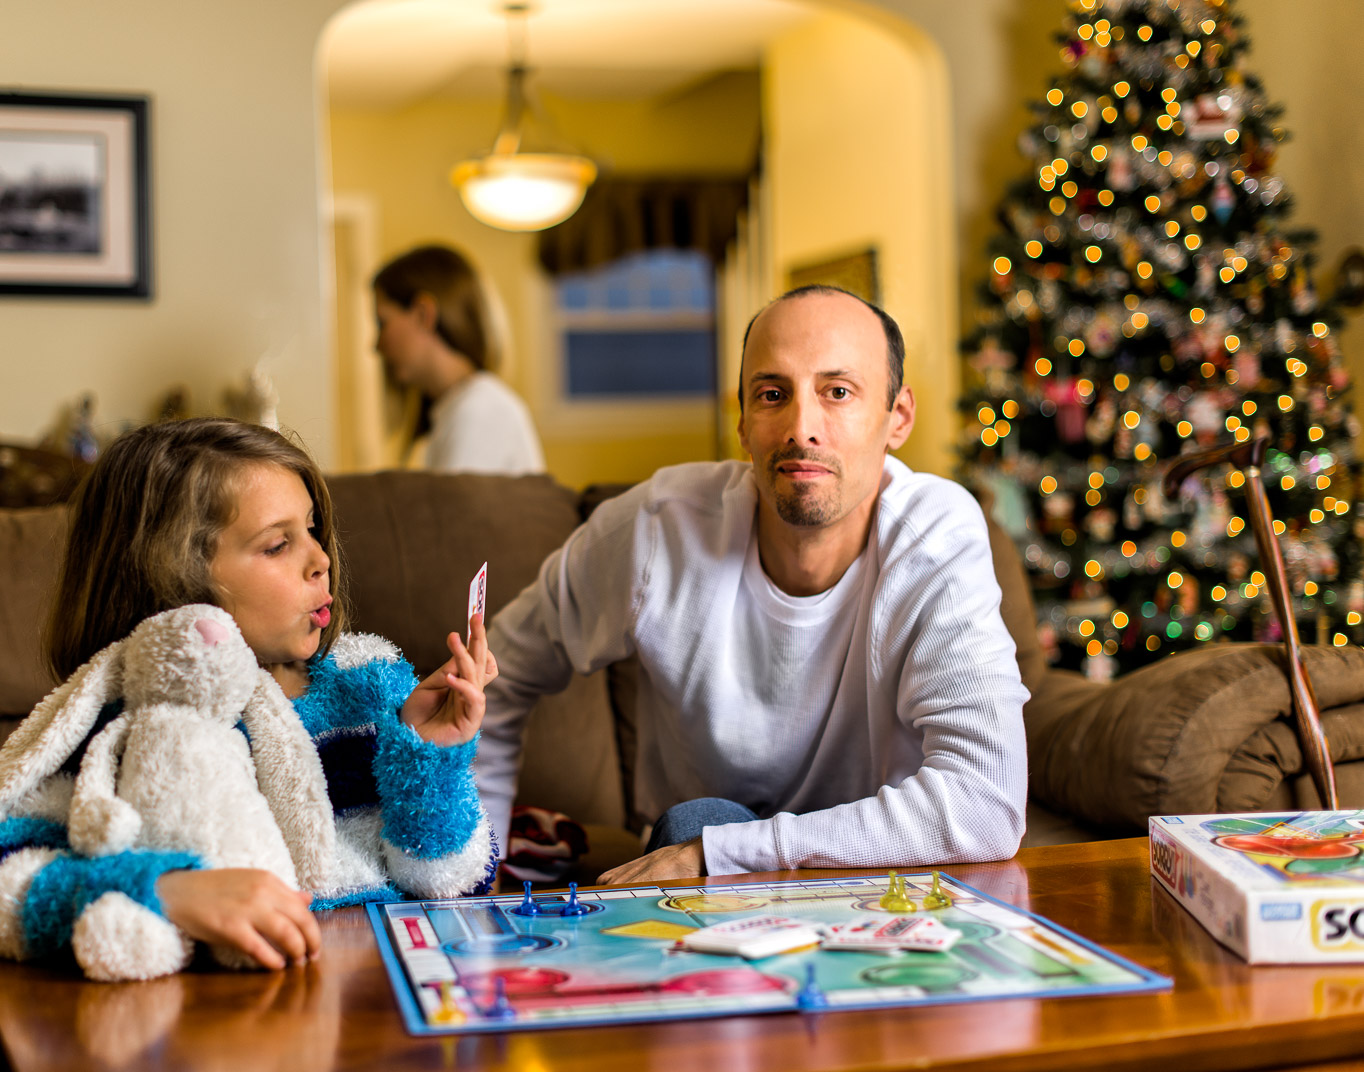 Connecticut man with Multiple Sclerosis plays Sorry with daughter in living room  while wife works at desk behind him near Christmas tree